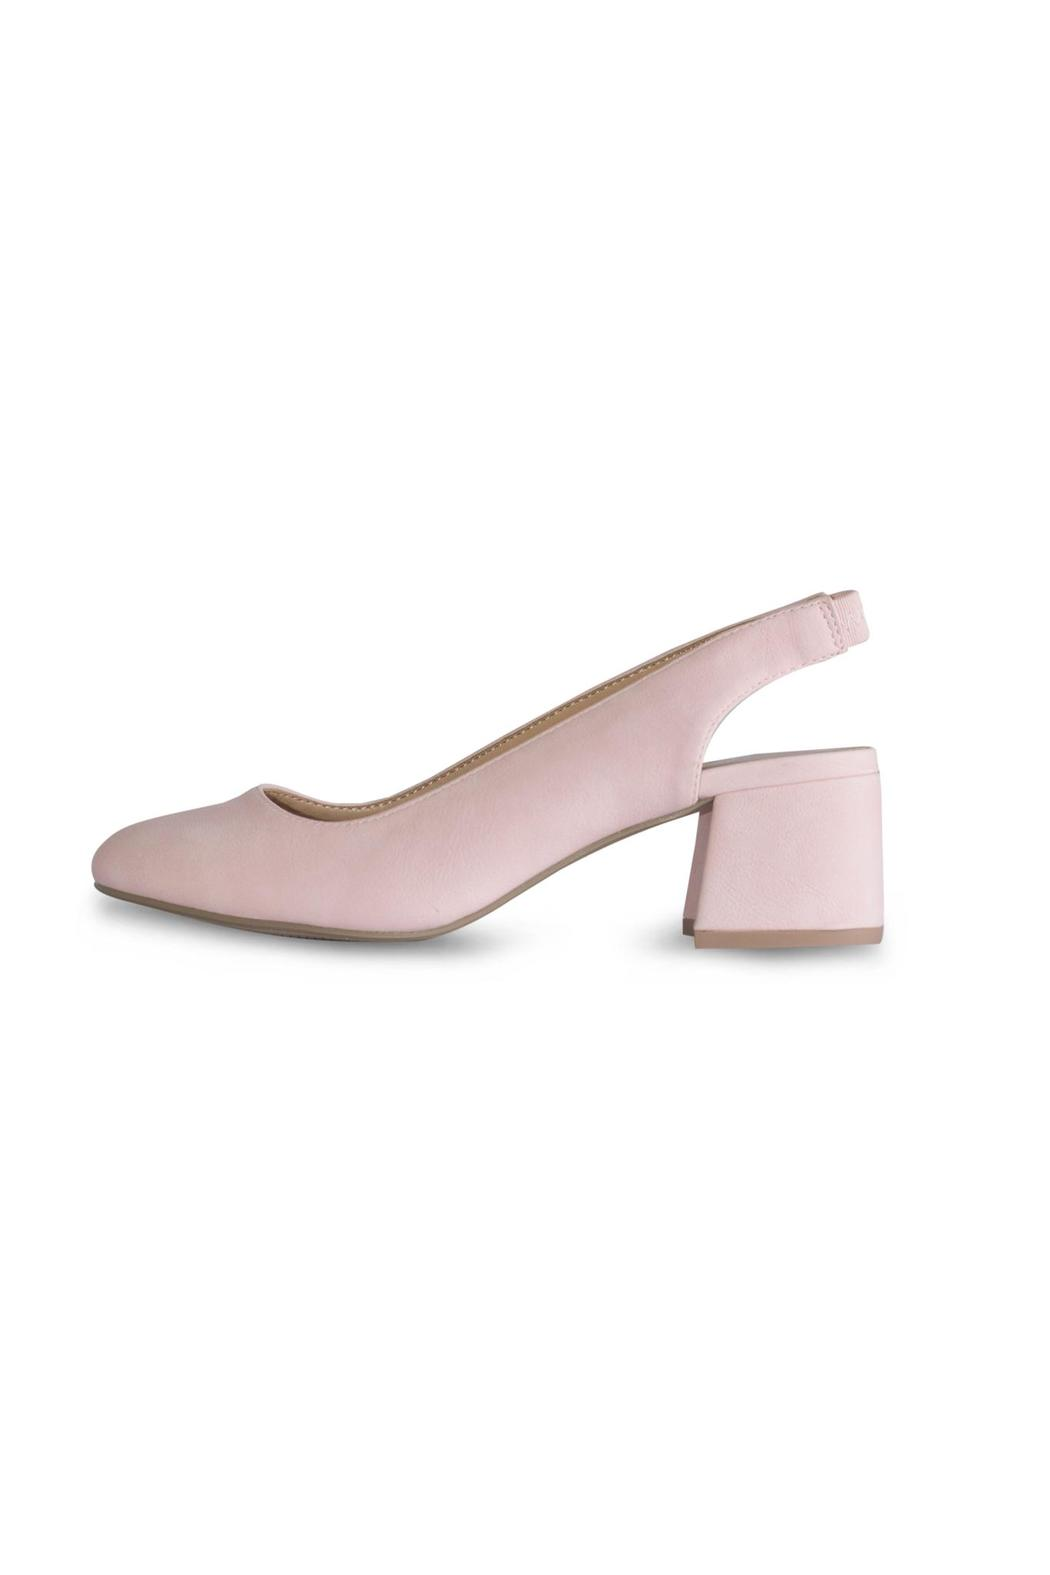 City Classified Pink Slingback Pump - Main Image